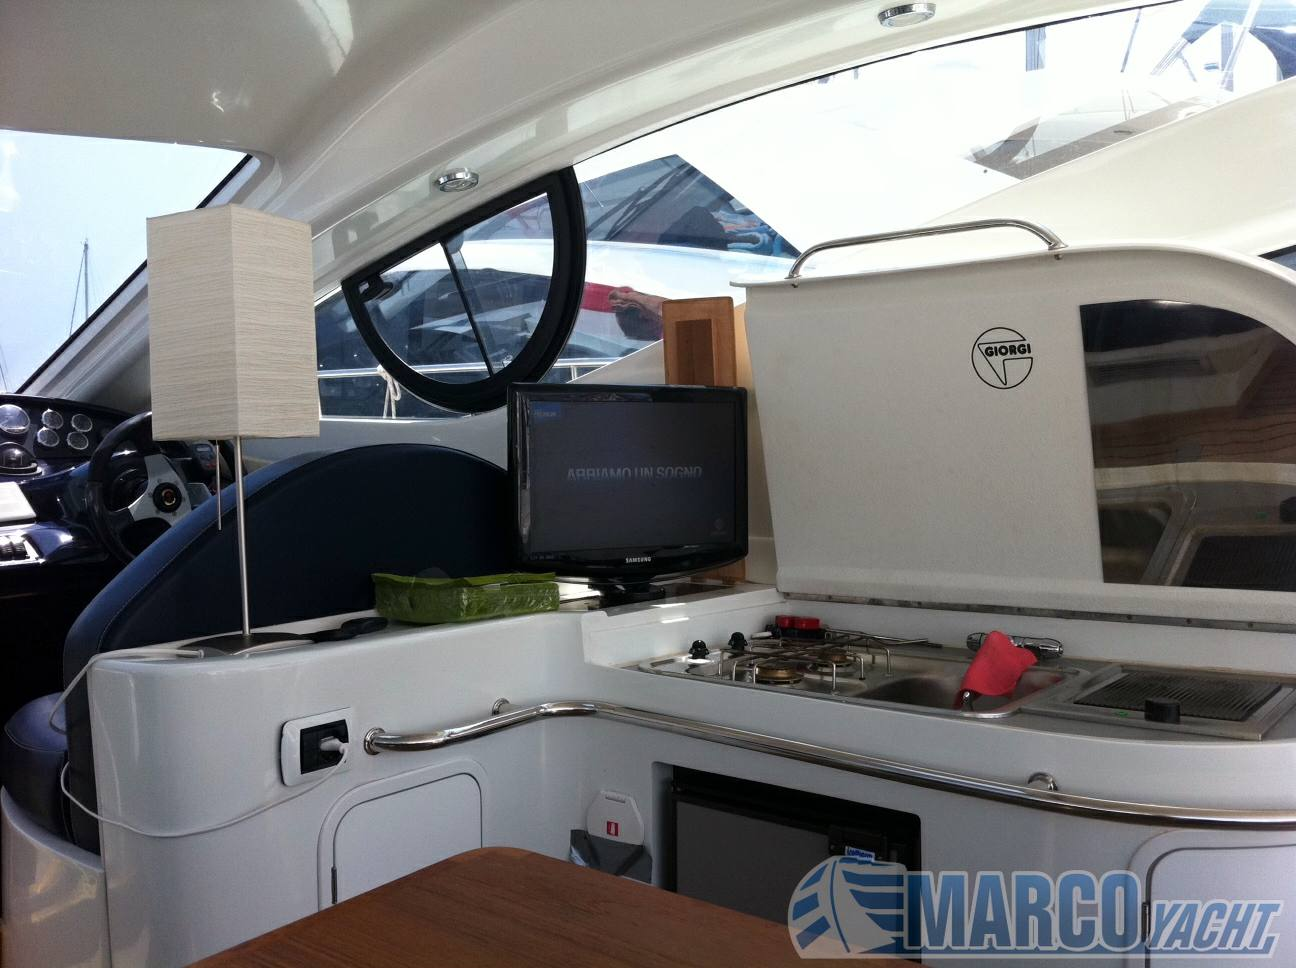 Giorgi marine Must 45 hard top